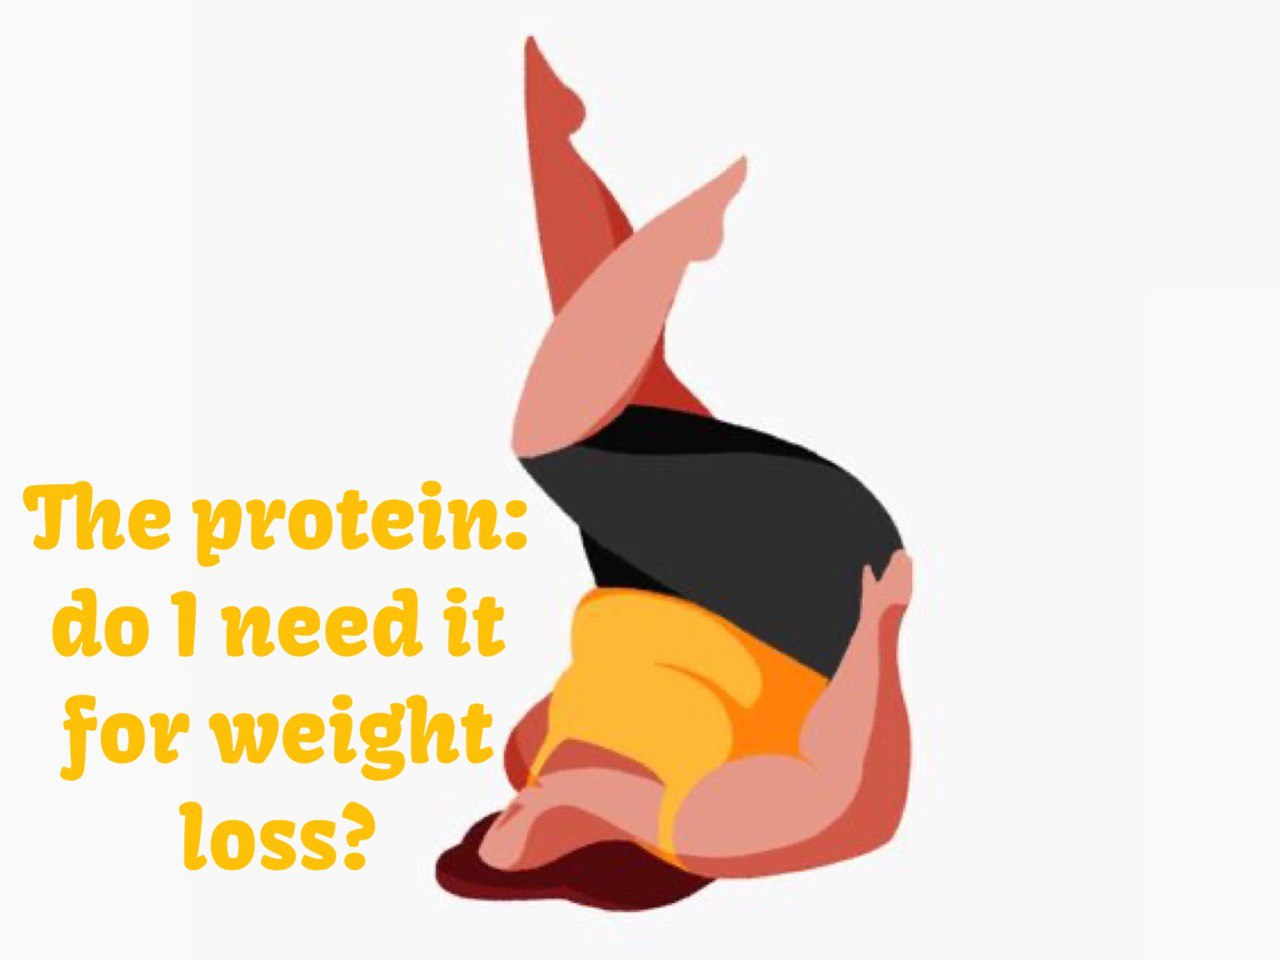 The protein: do I need it for weight loss?